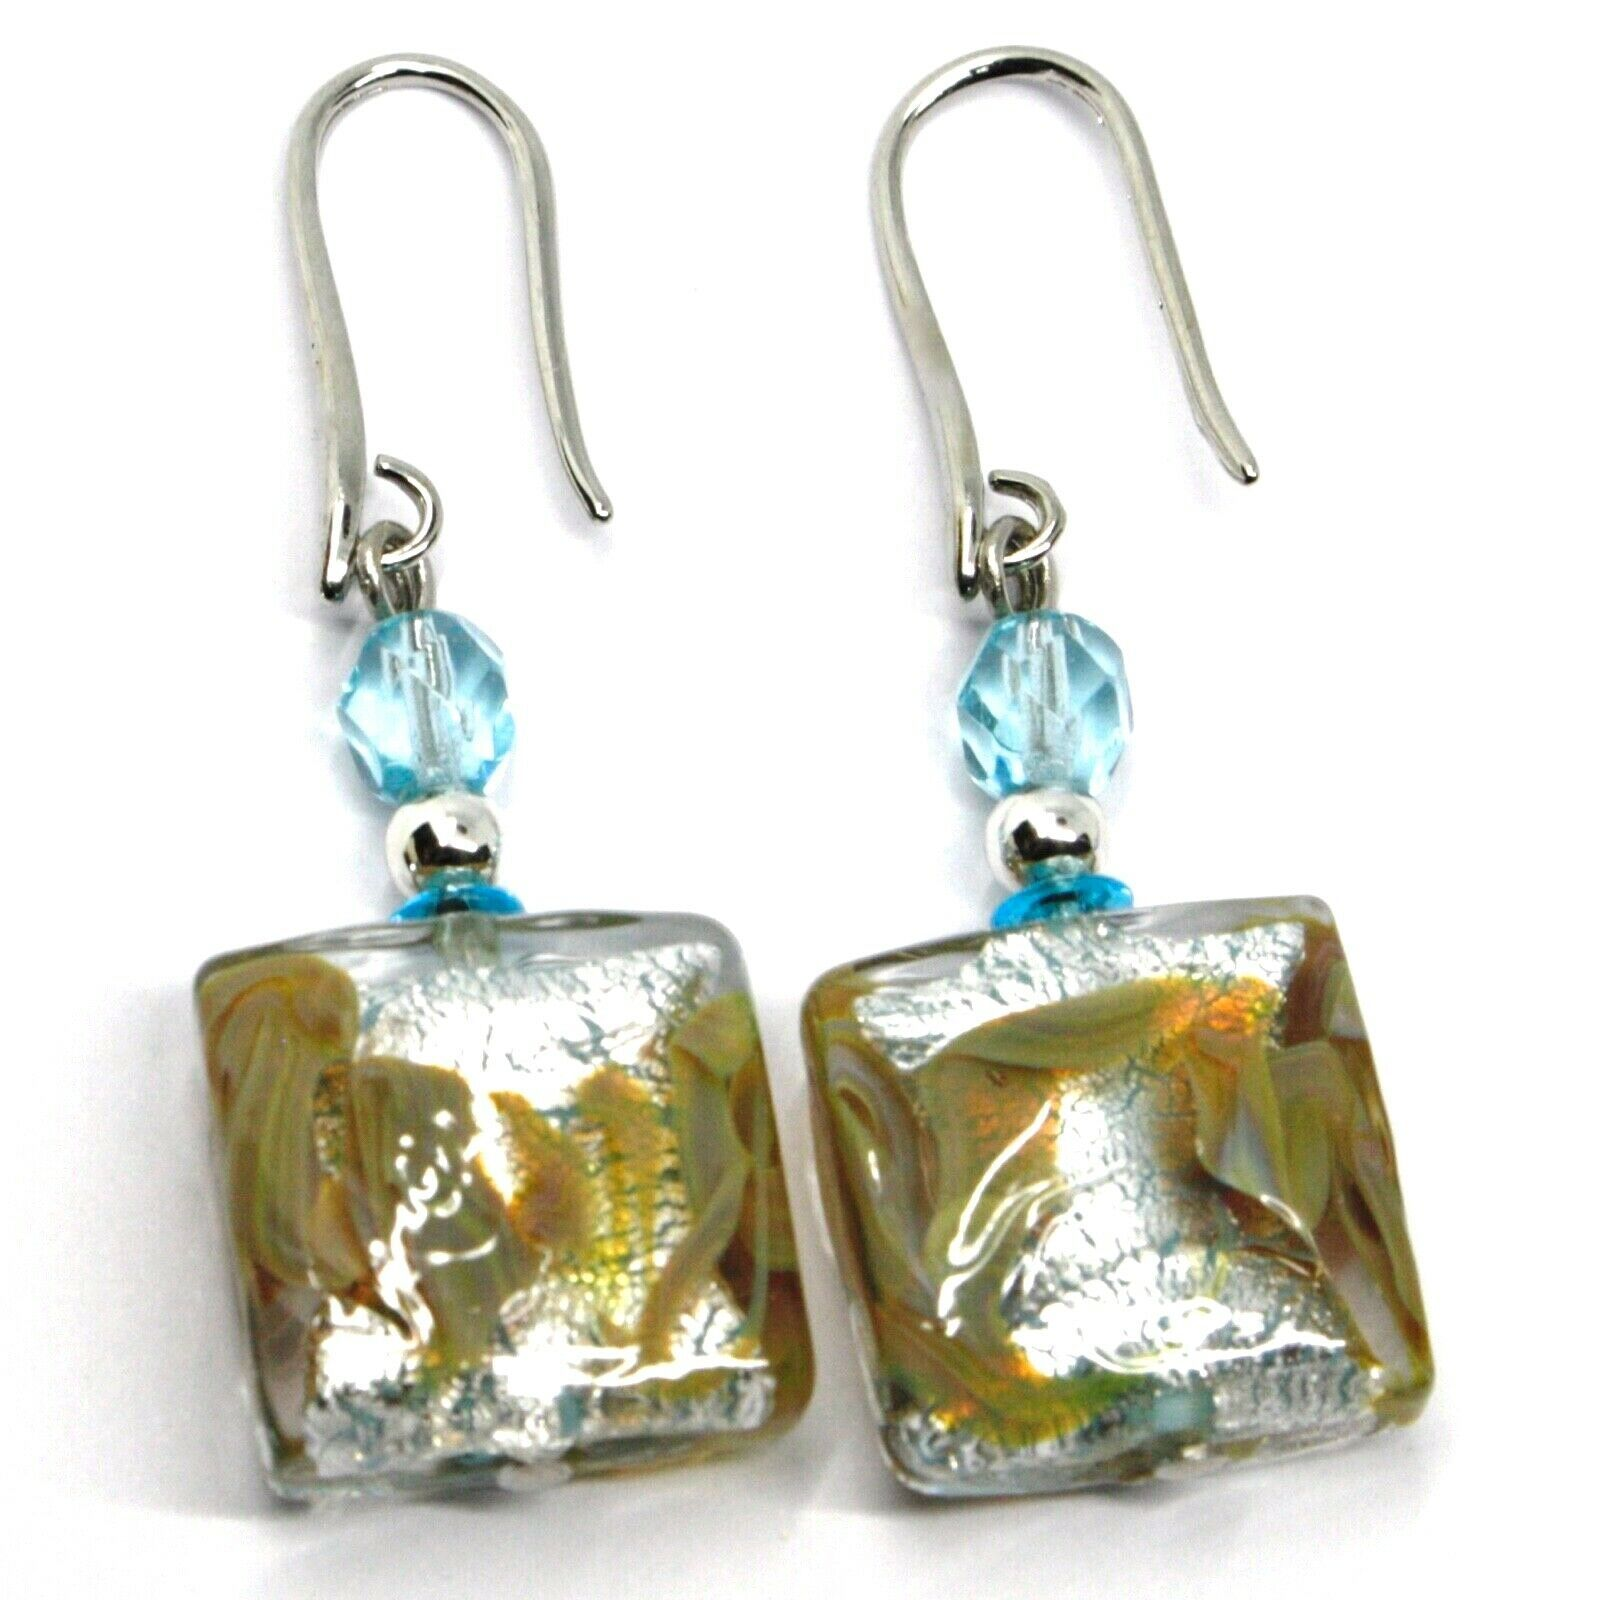 PENDANT EARRINGS WITH AZURE MURANO SQUARE GLASS & SILVER LEAF, MADE IN ITALY 5cm